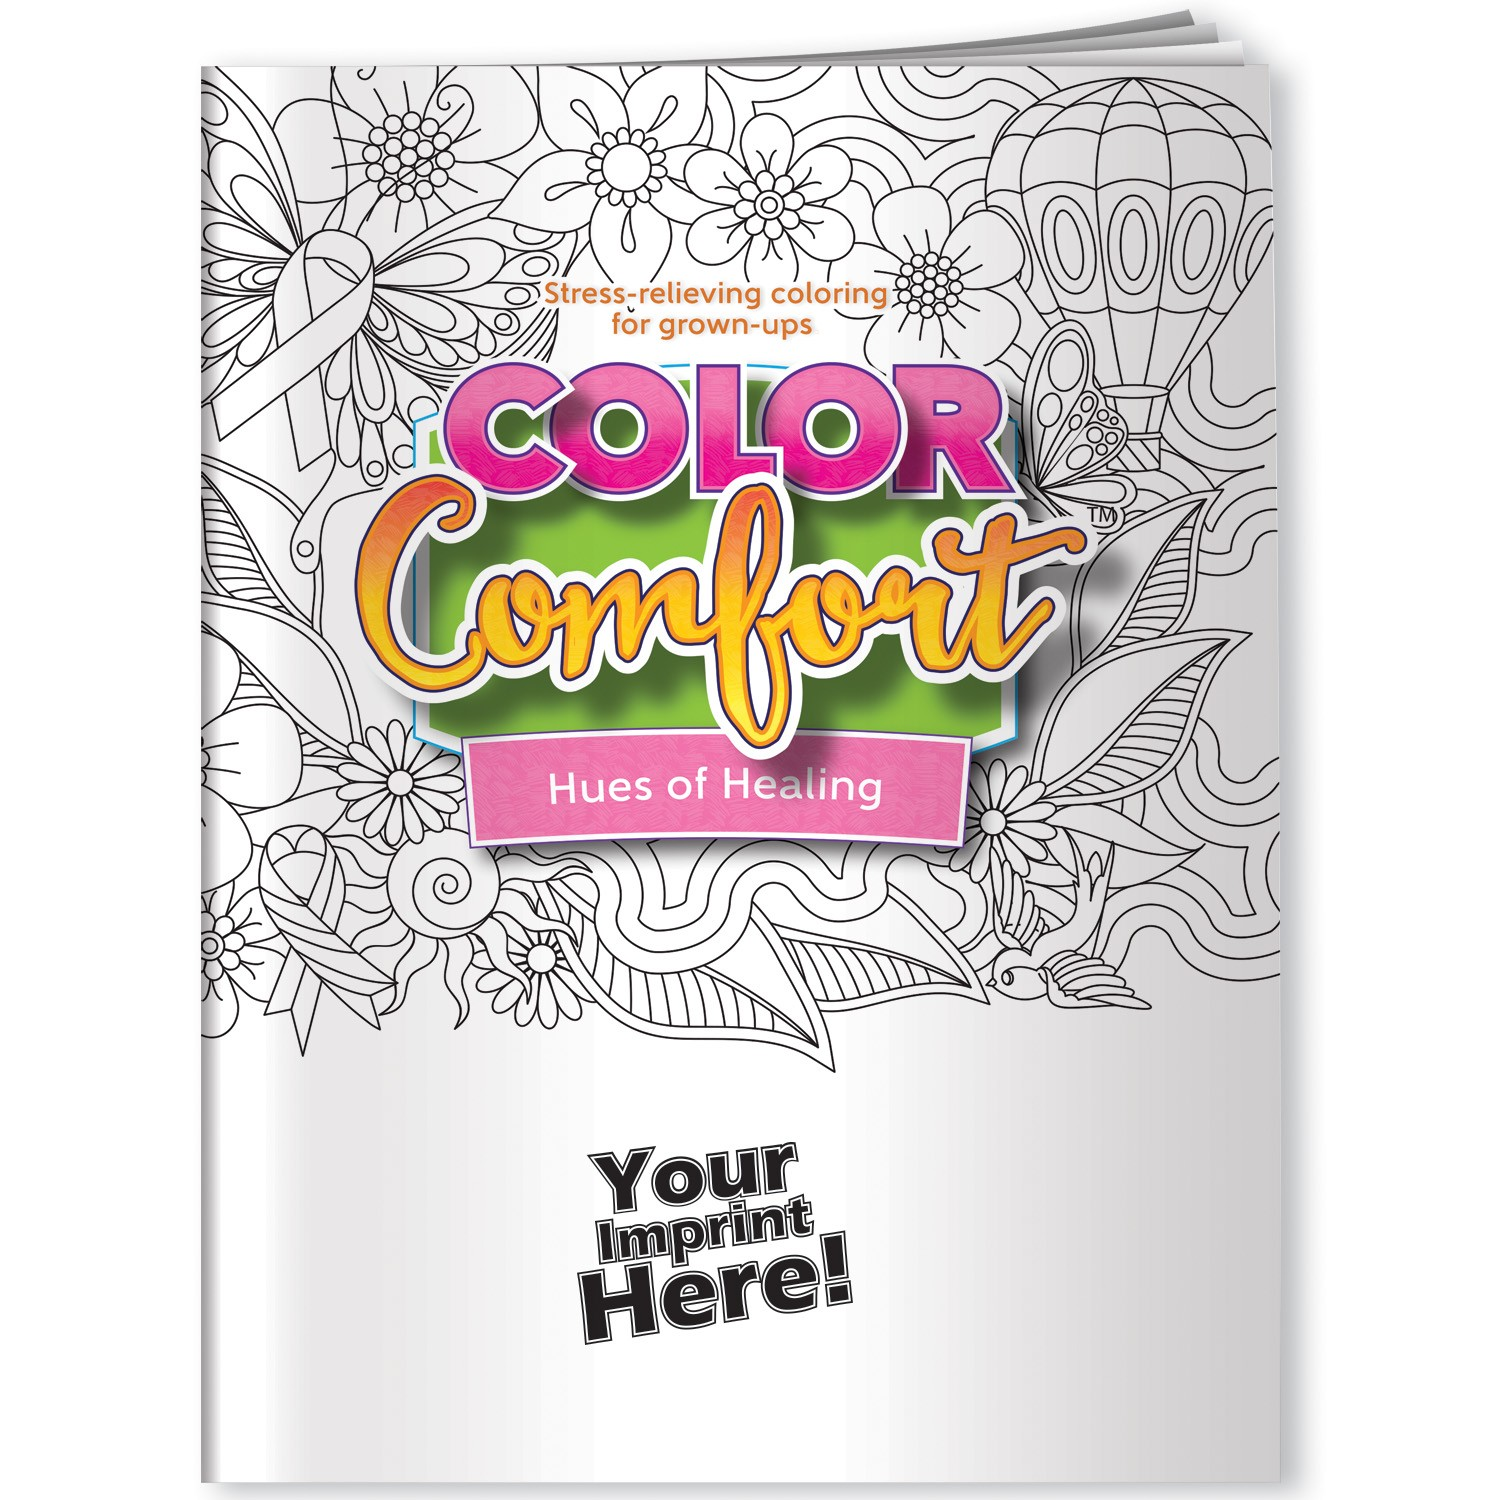 Hues Of Healing Breast Cancer Awareness Color Comfort